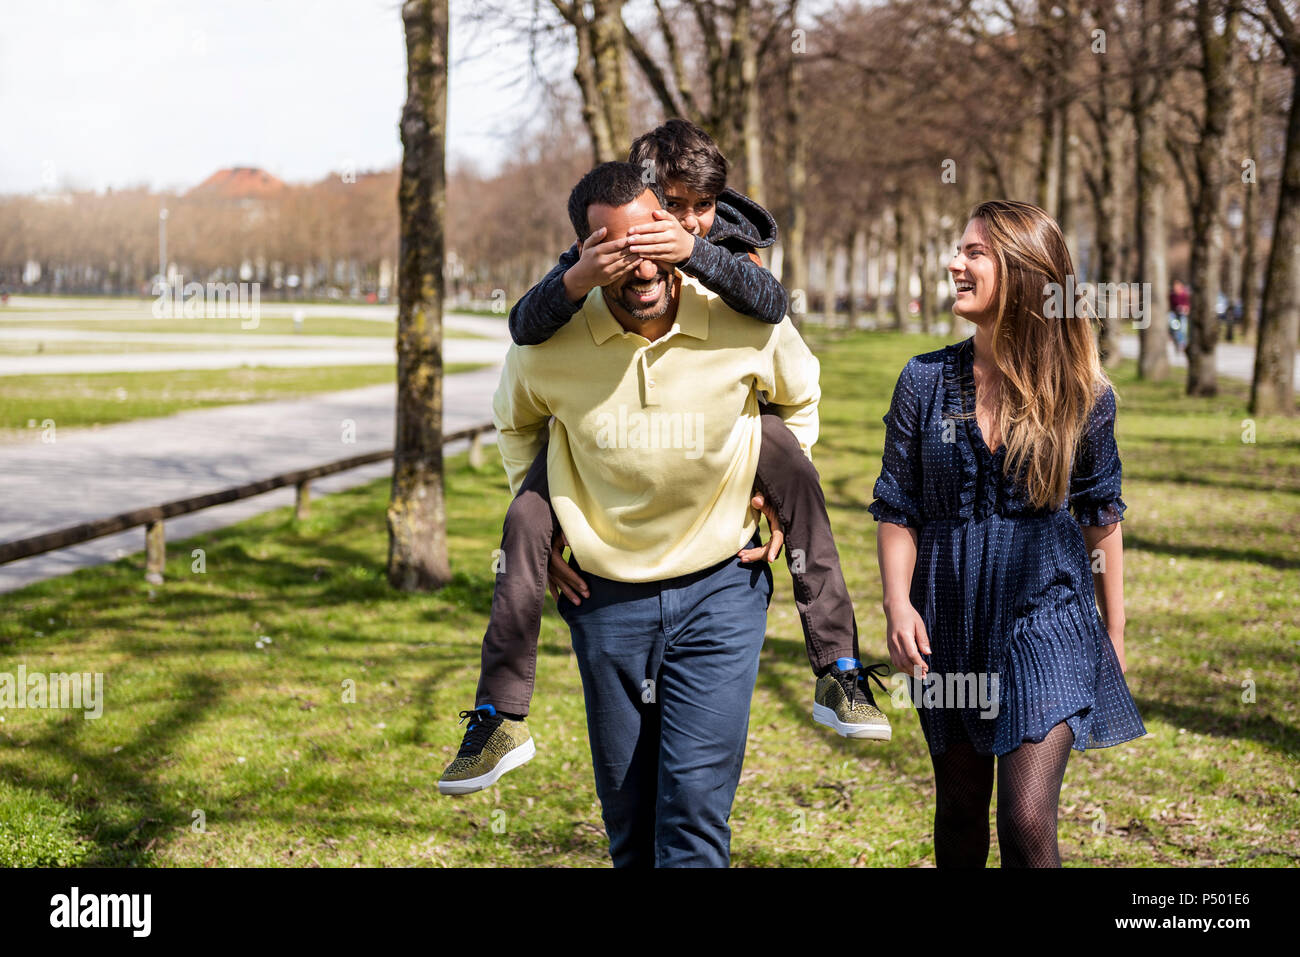 Happy family walking in a park - Stock Image